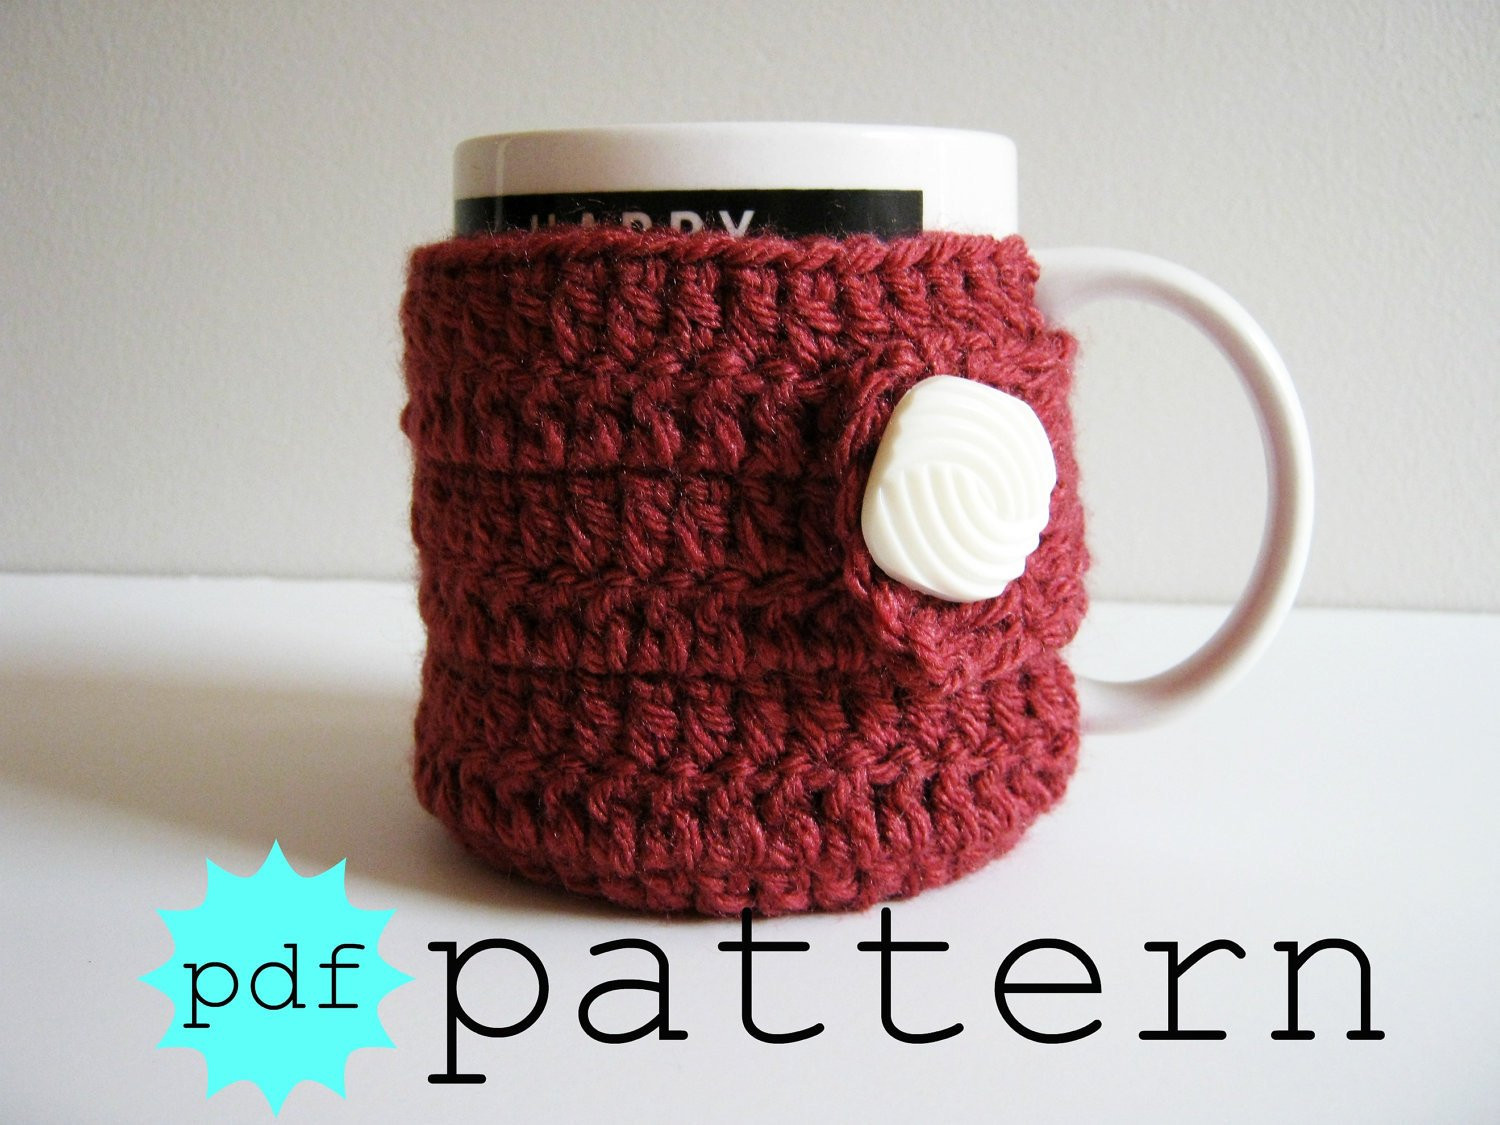 Crochet Coffee Cup Cozy Luxury Pdf Crochet Pattern Coffee Mug Cozy with button by Of Crochet Coffee Cup Cozy Inspirational Crochet Coffee Cup Cozy Pattern Pdf Download Coffee Cup Cozy